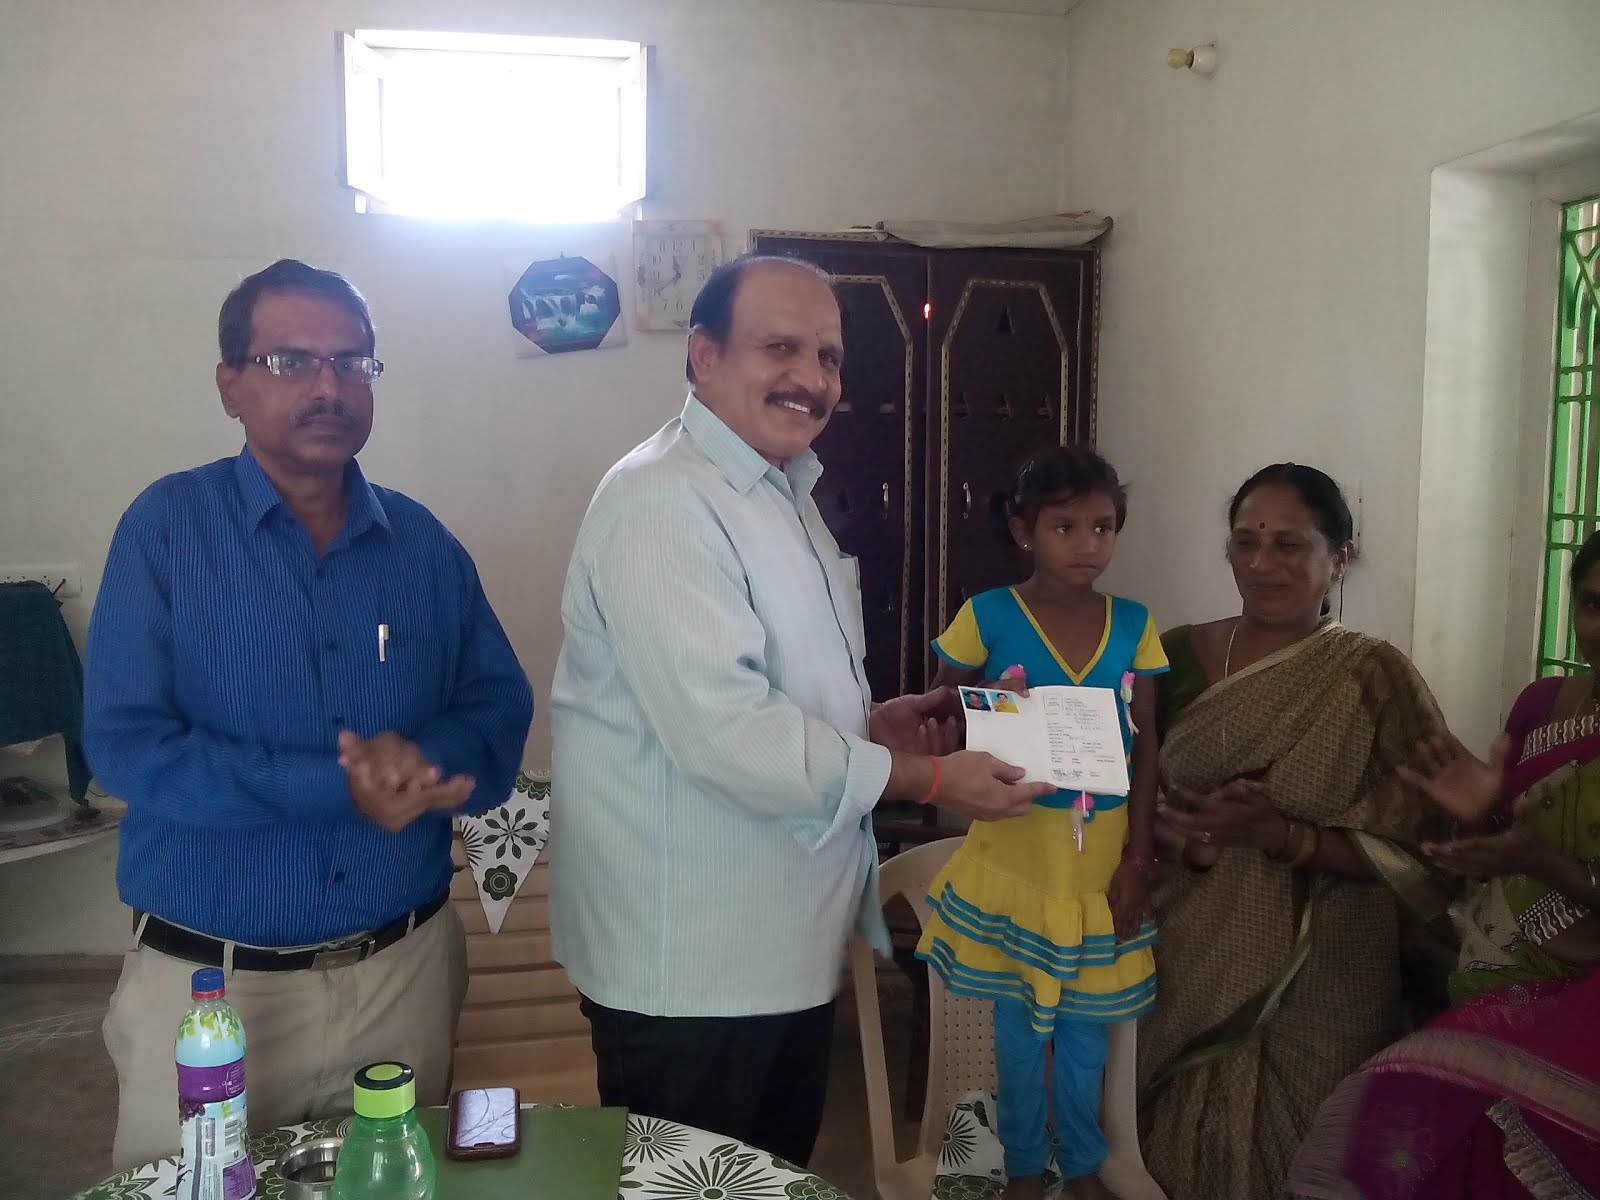 CPMG visit datd 08.07.15 to PUNABAKA BO a/w Pellakuru SO of Gudur Dn